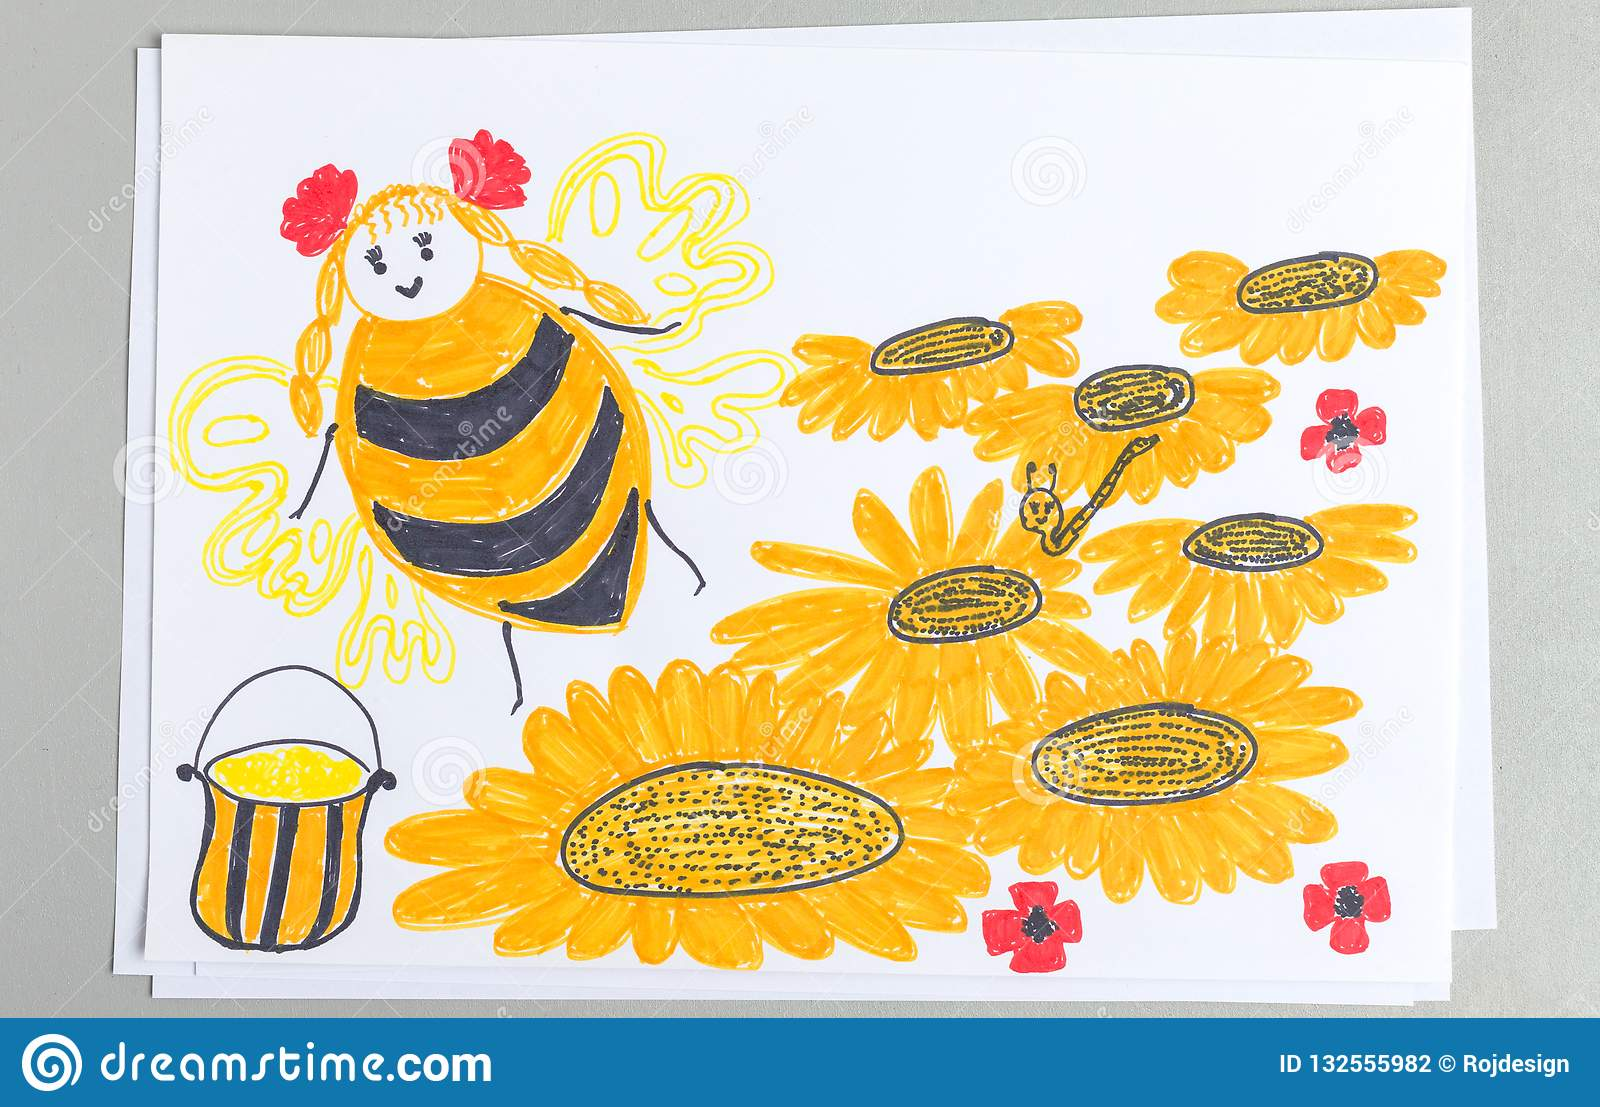 Kid drawing of bee flying over flowers collecting nectar and making honey